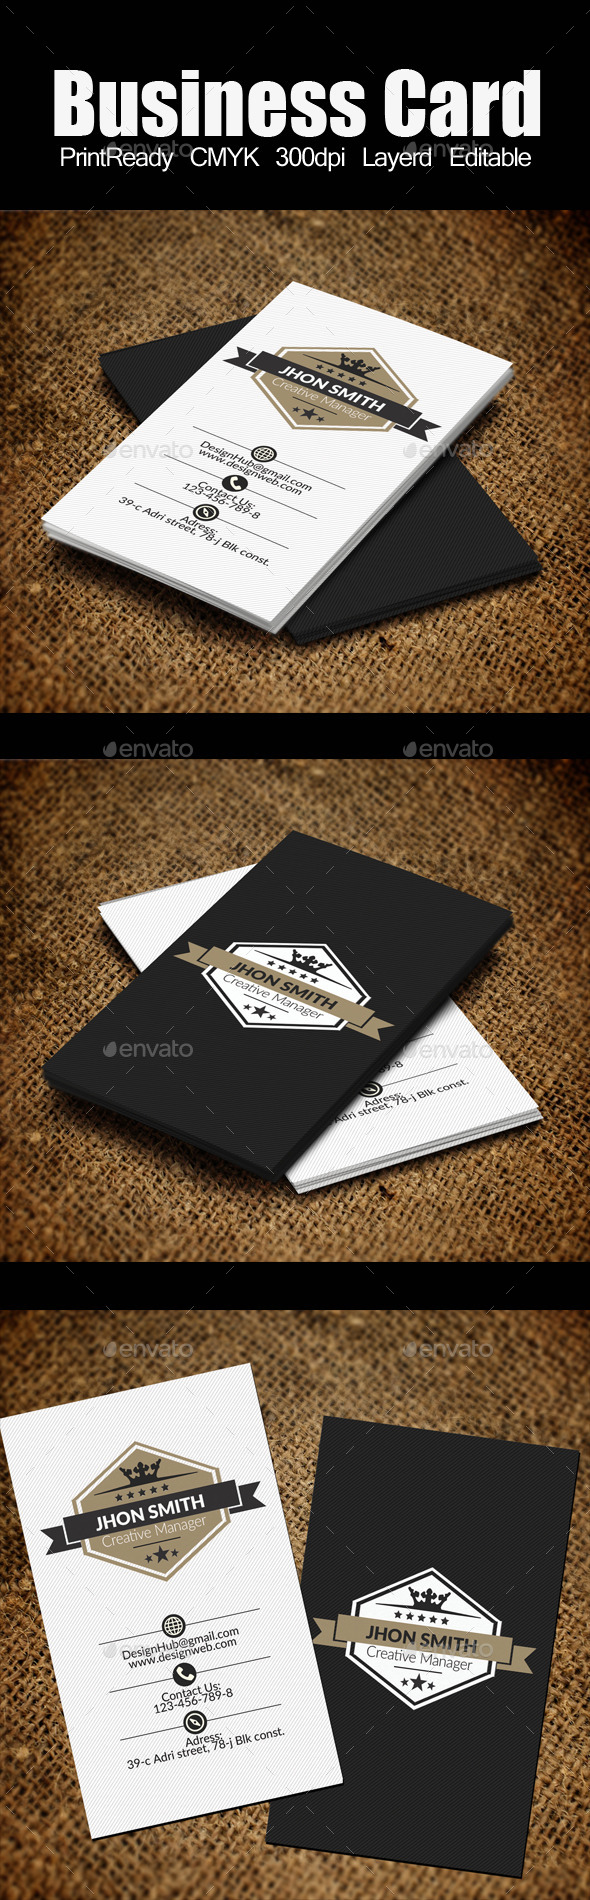 vertical Retro Vintage Business Card Template - Retro/Vintage Business Cards